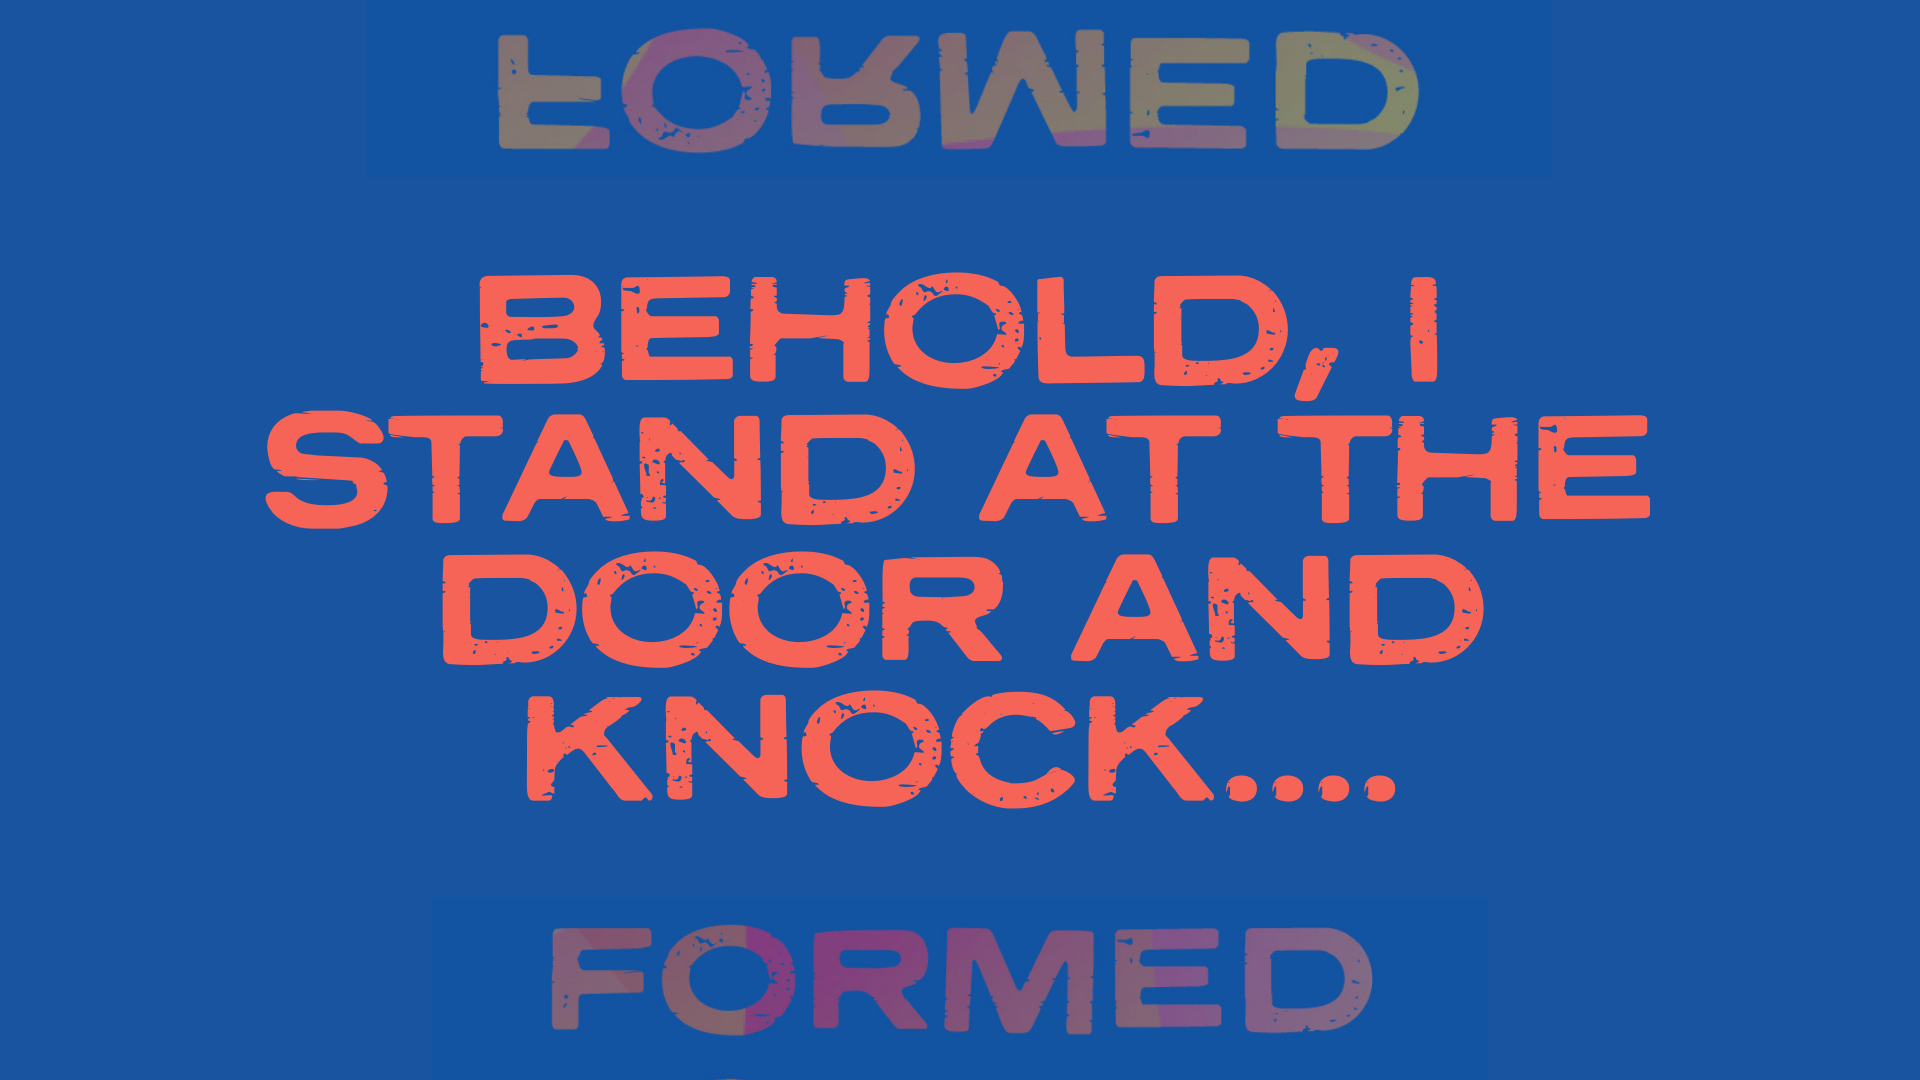 Behold, I stand at the door and knock....